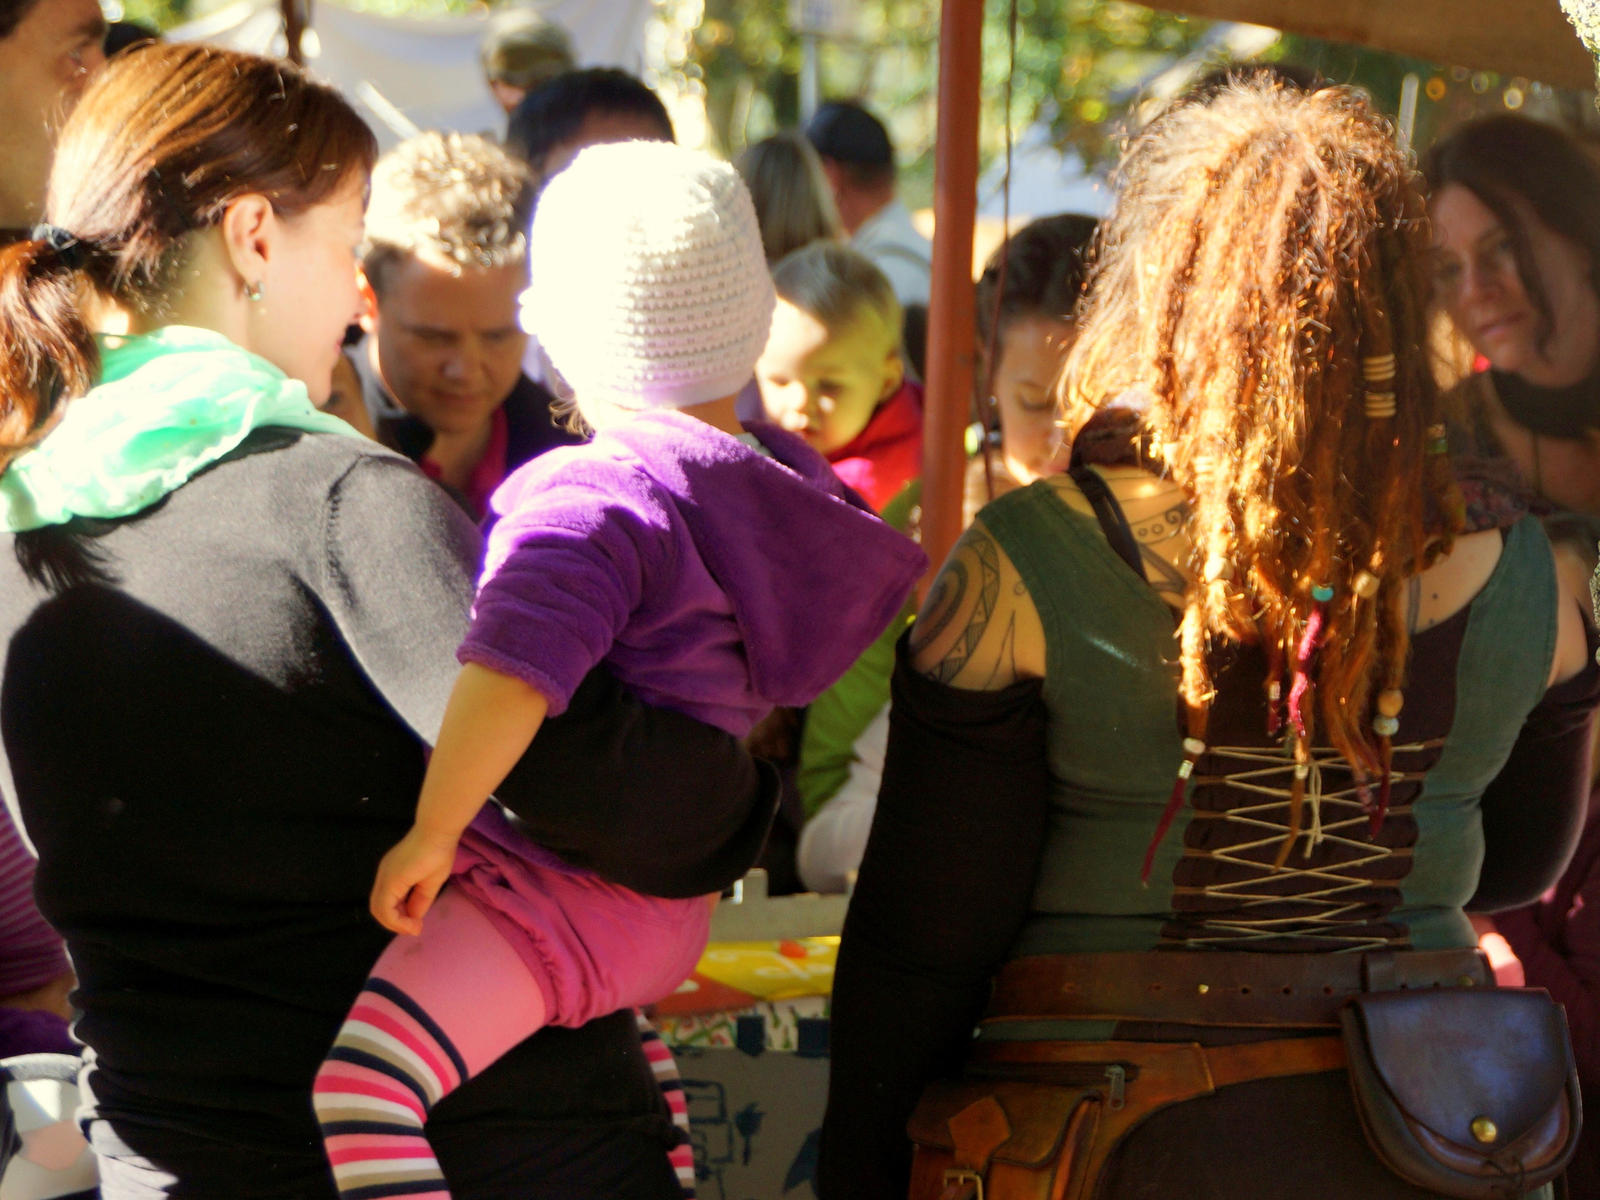 people at the fair #2 by Mittelfranke